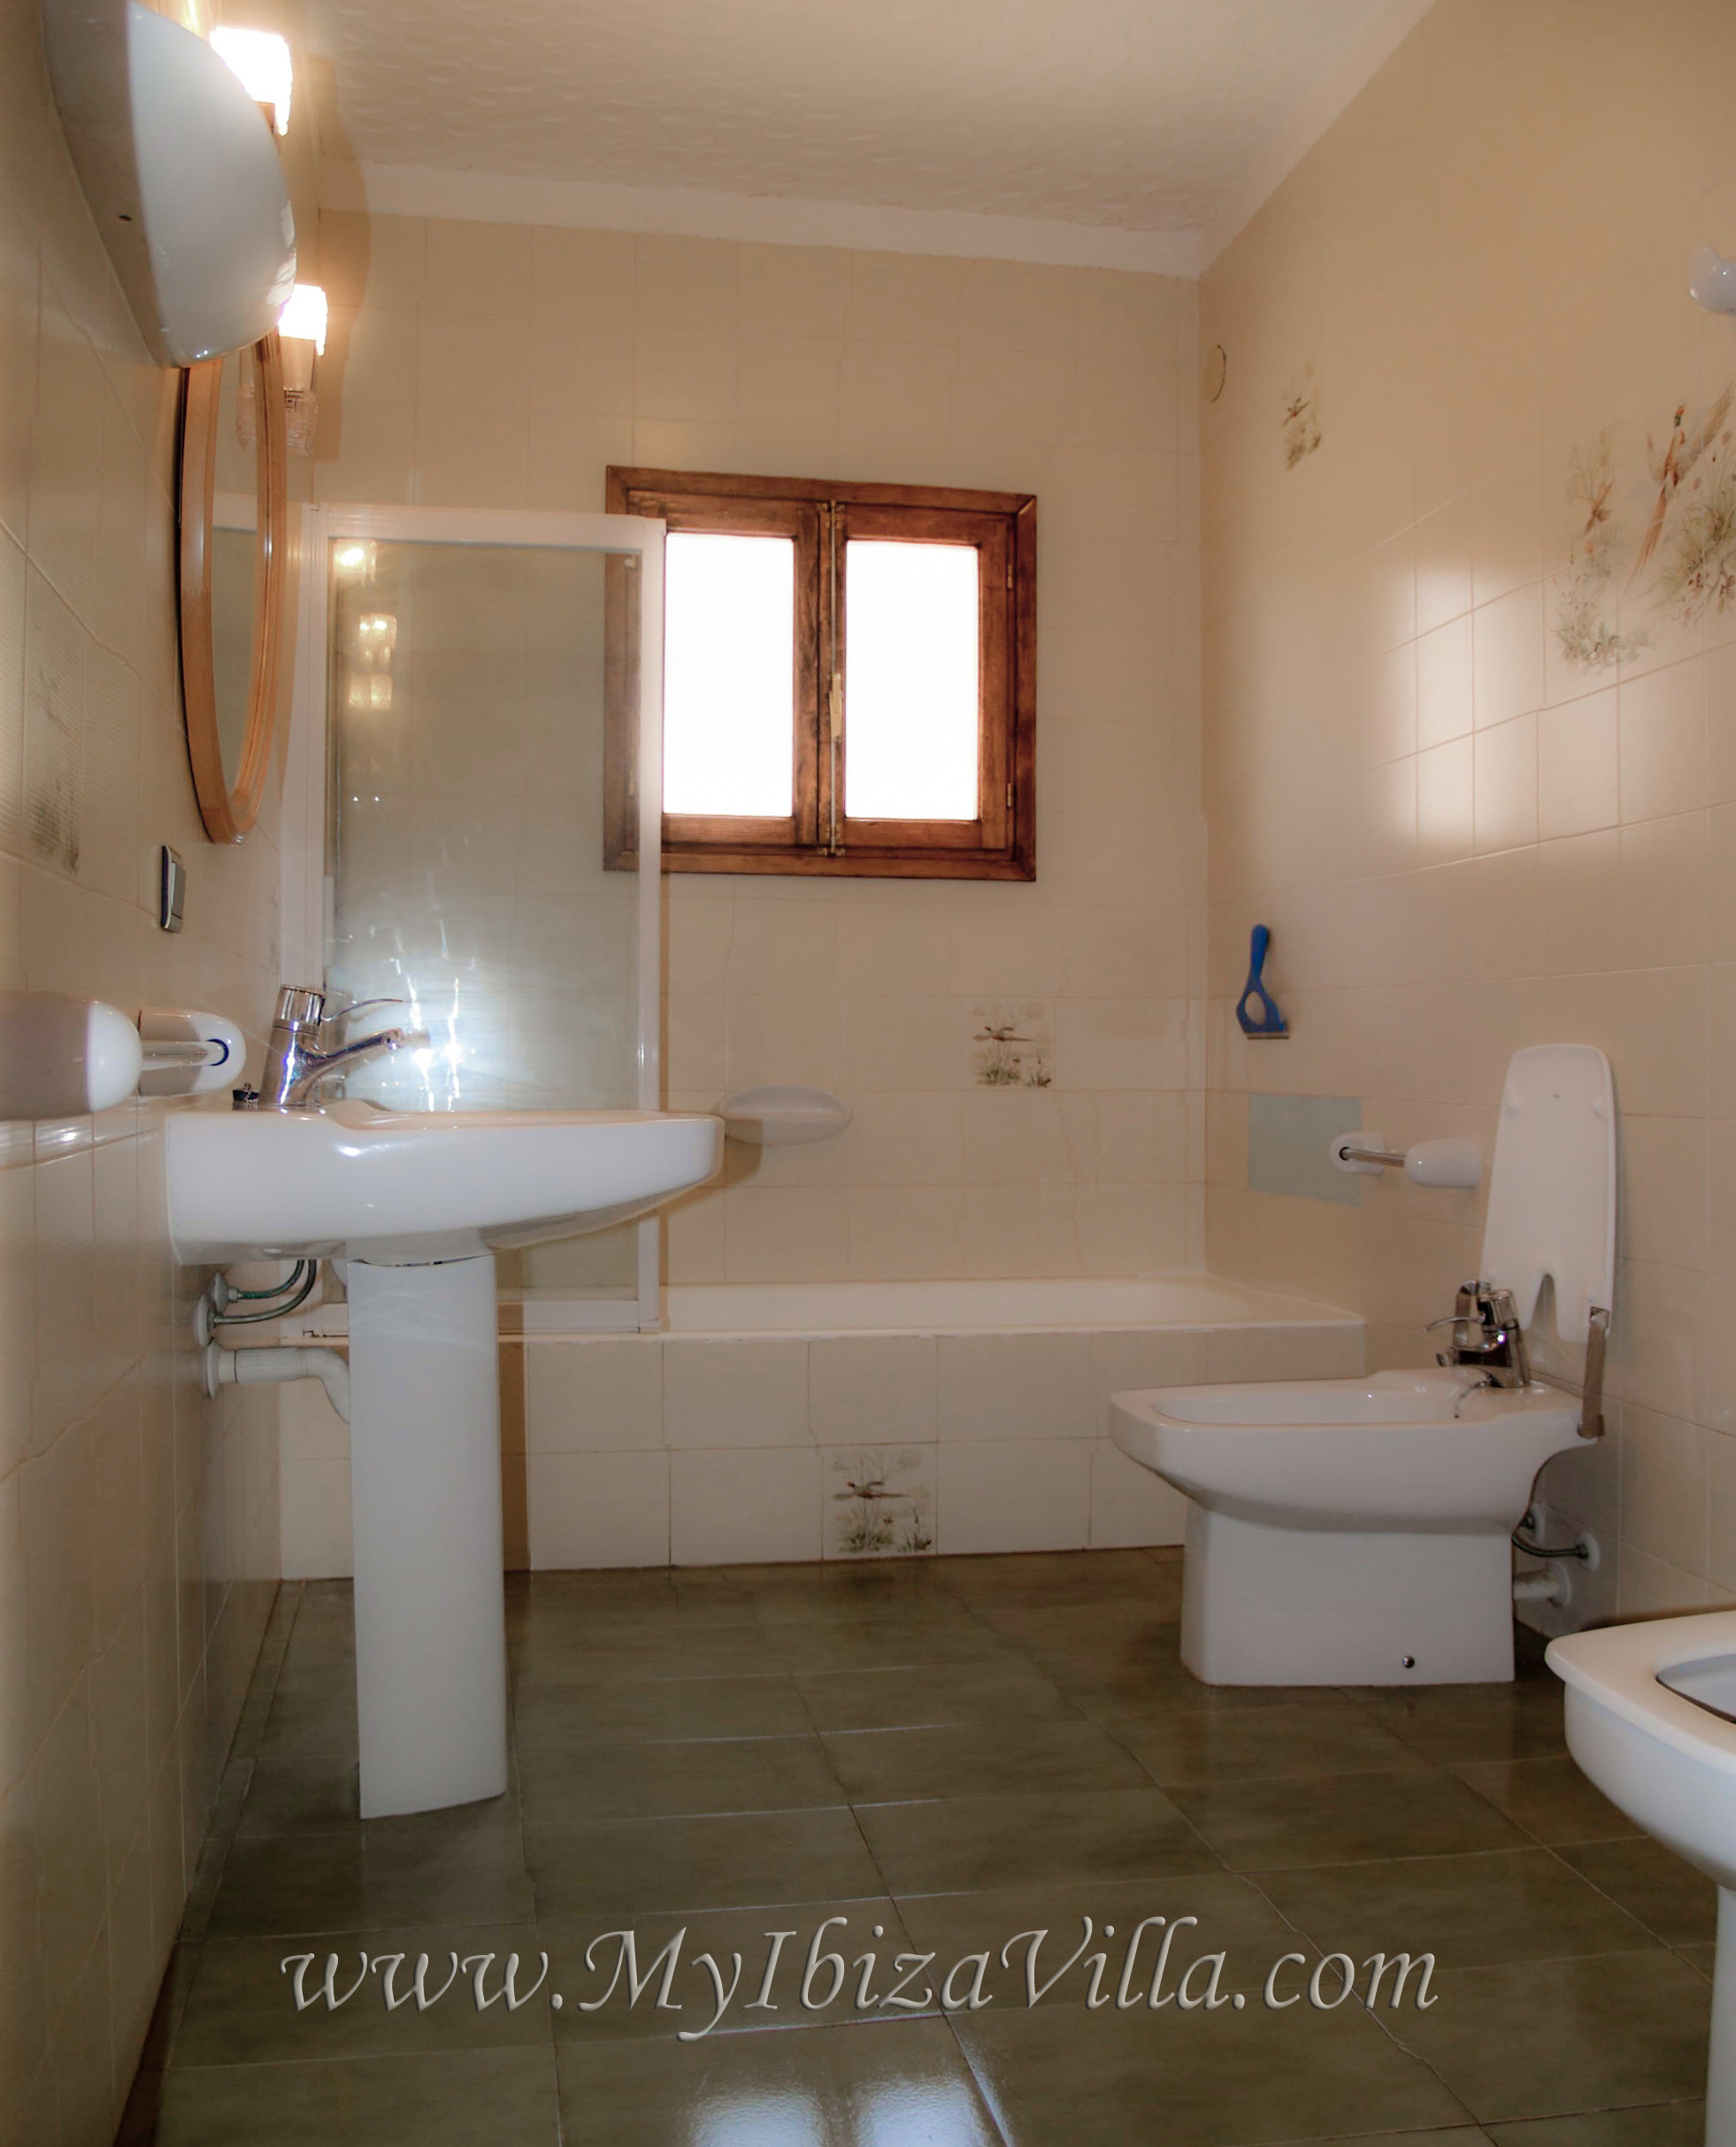 Spain villa to rent in Ibiza with 3 bathrooms.